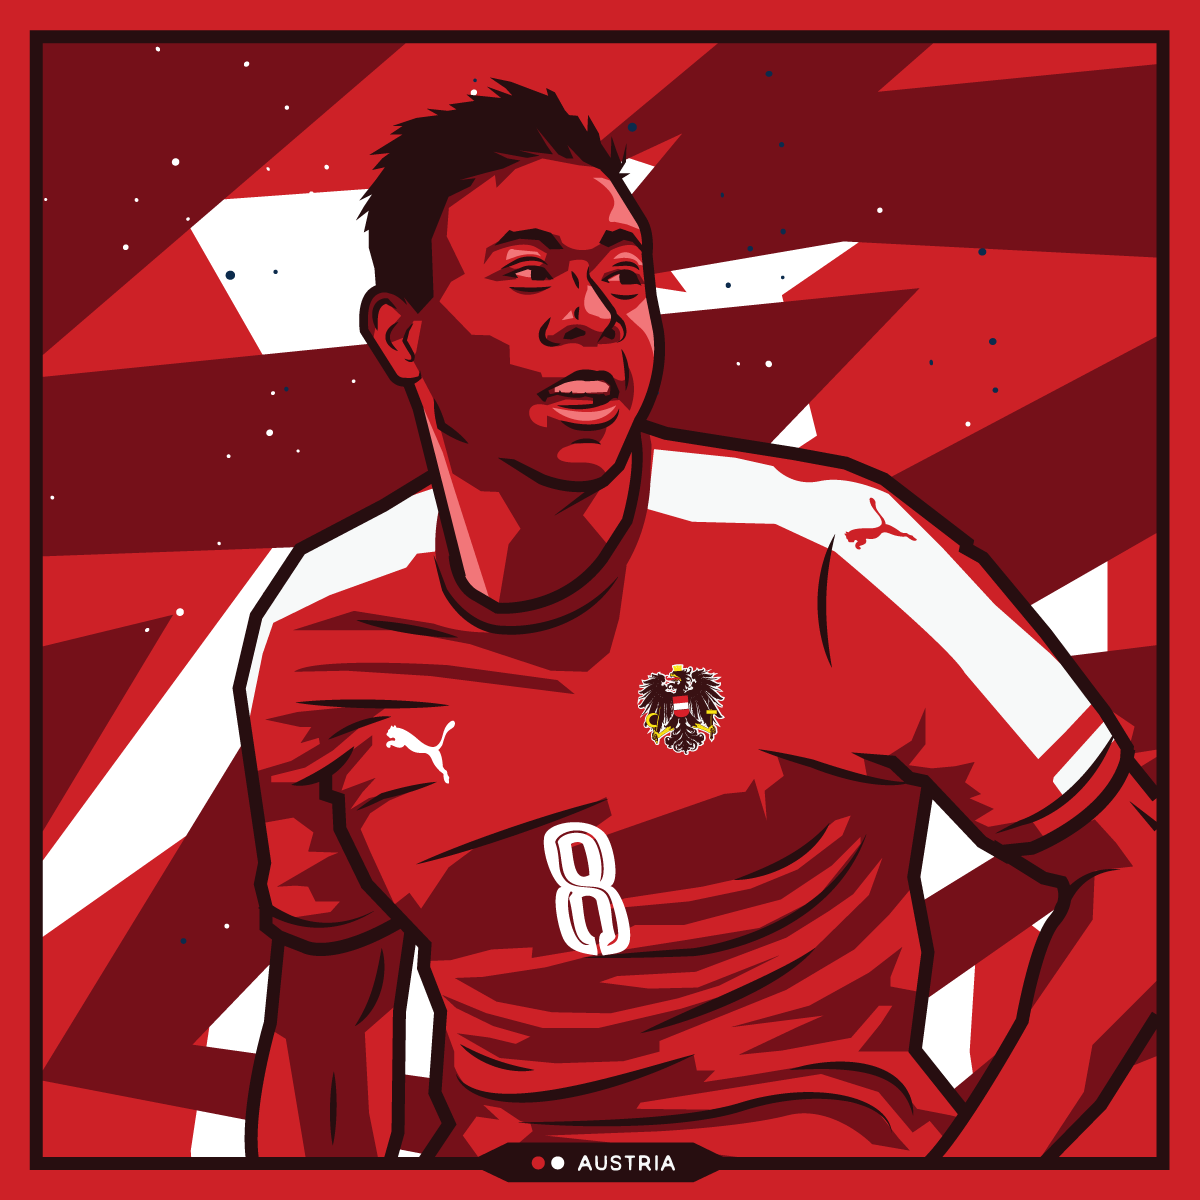 Euro 2016 - David Alaba - Austria by Kieran Carroll Design